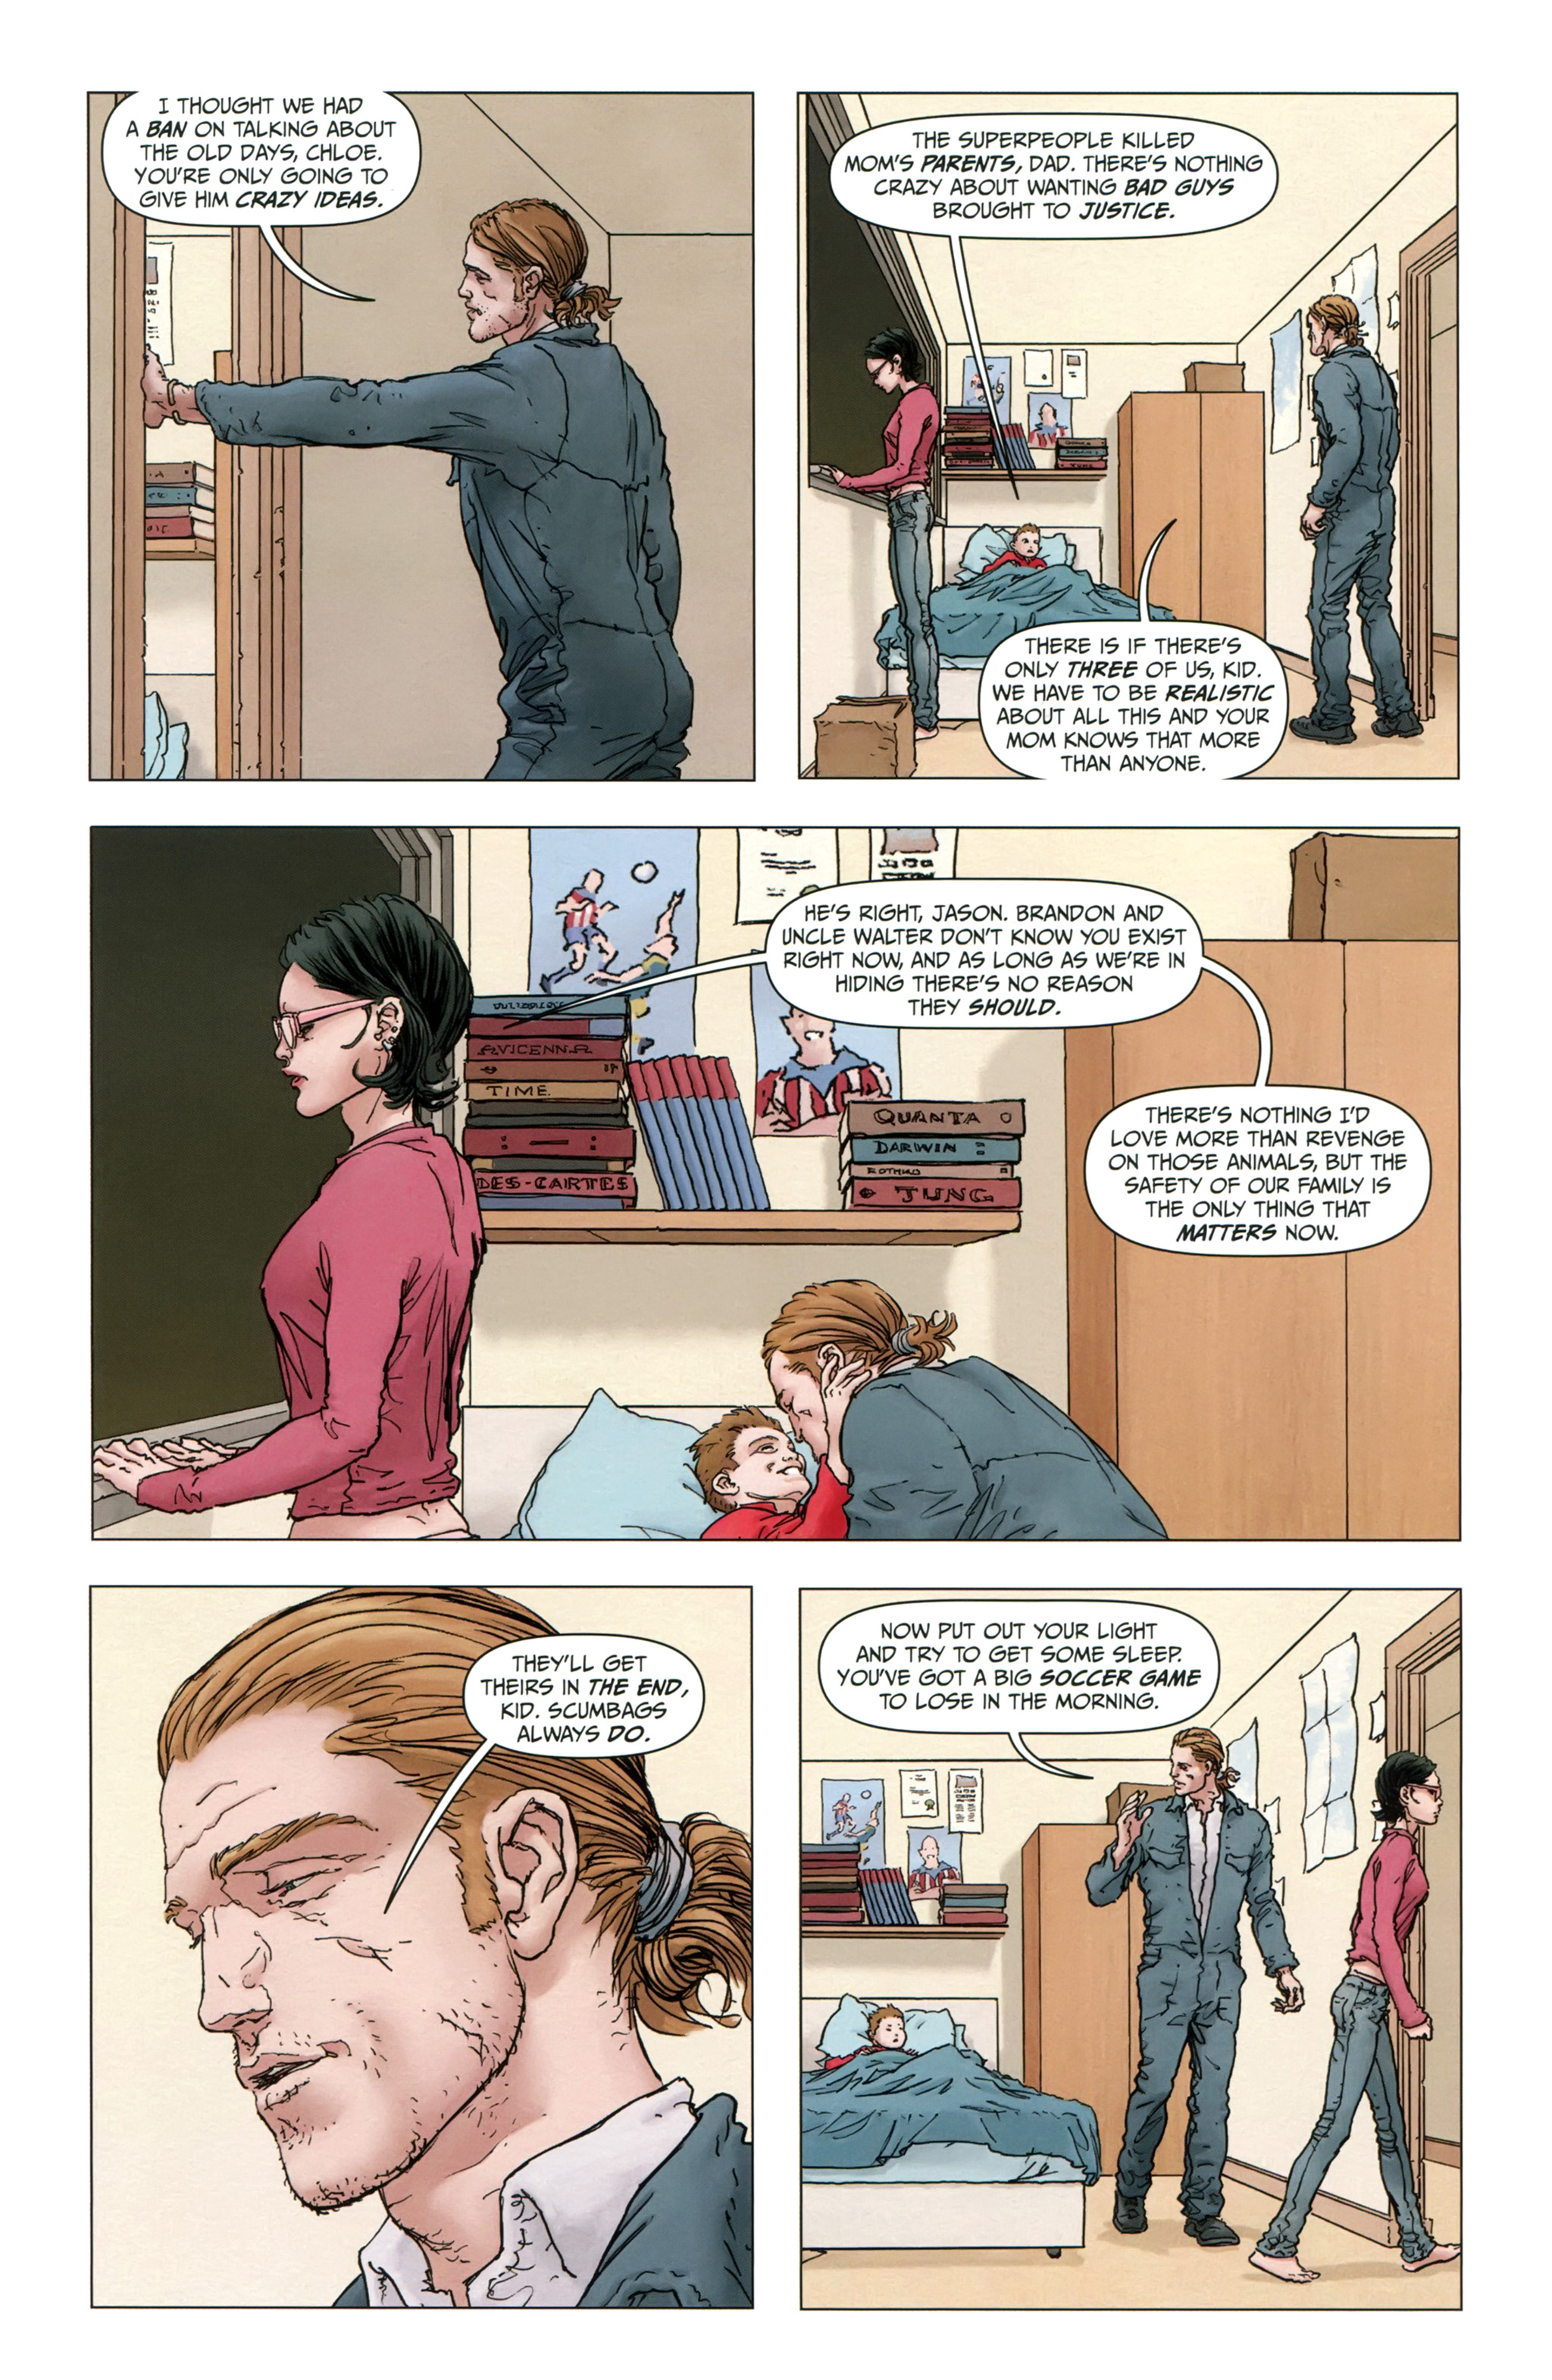 Jupiter S Legacy Issue 4 Read Jupiter S Legacy Issue 4 Comic Online In High Quality Read Full Comic Online For Free Read Comics Online In High Quality